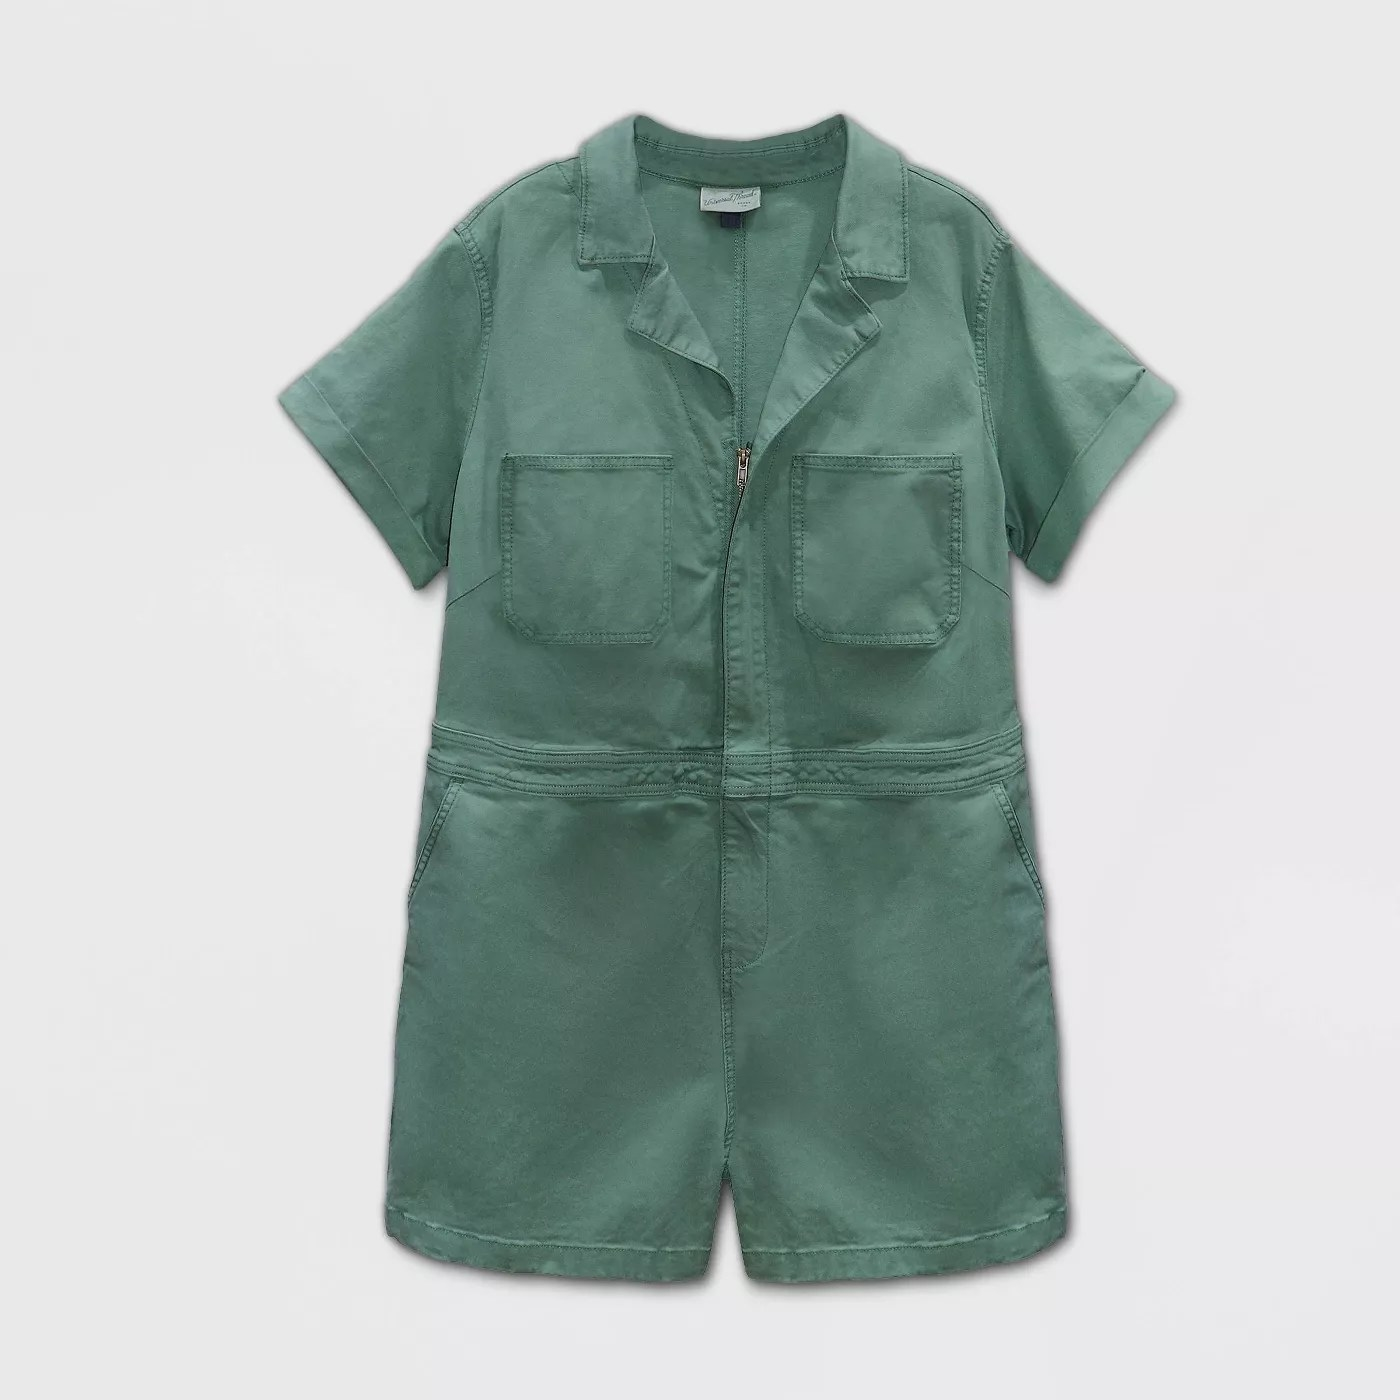 picture of green romper